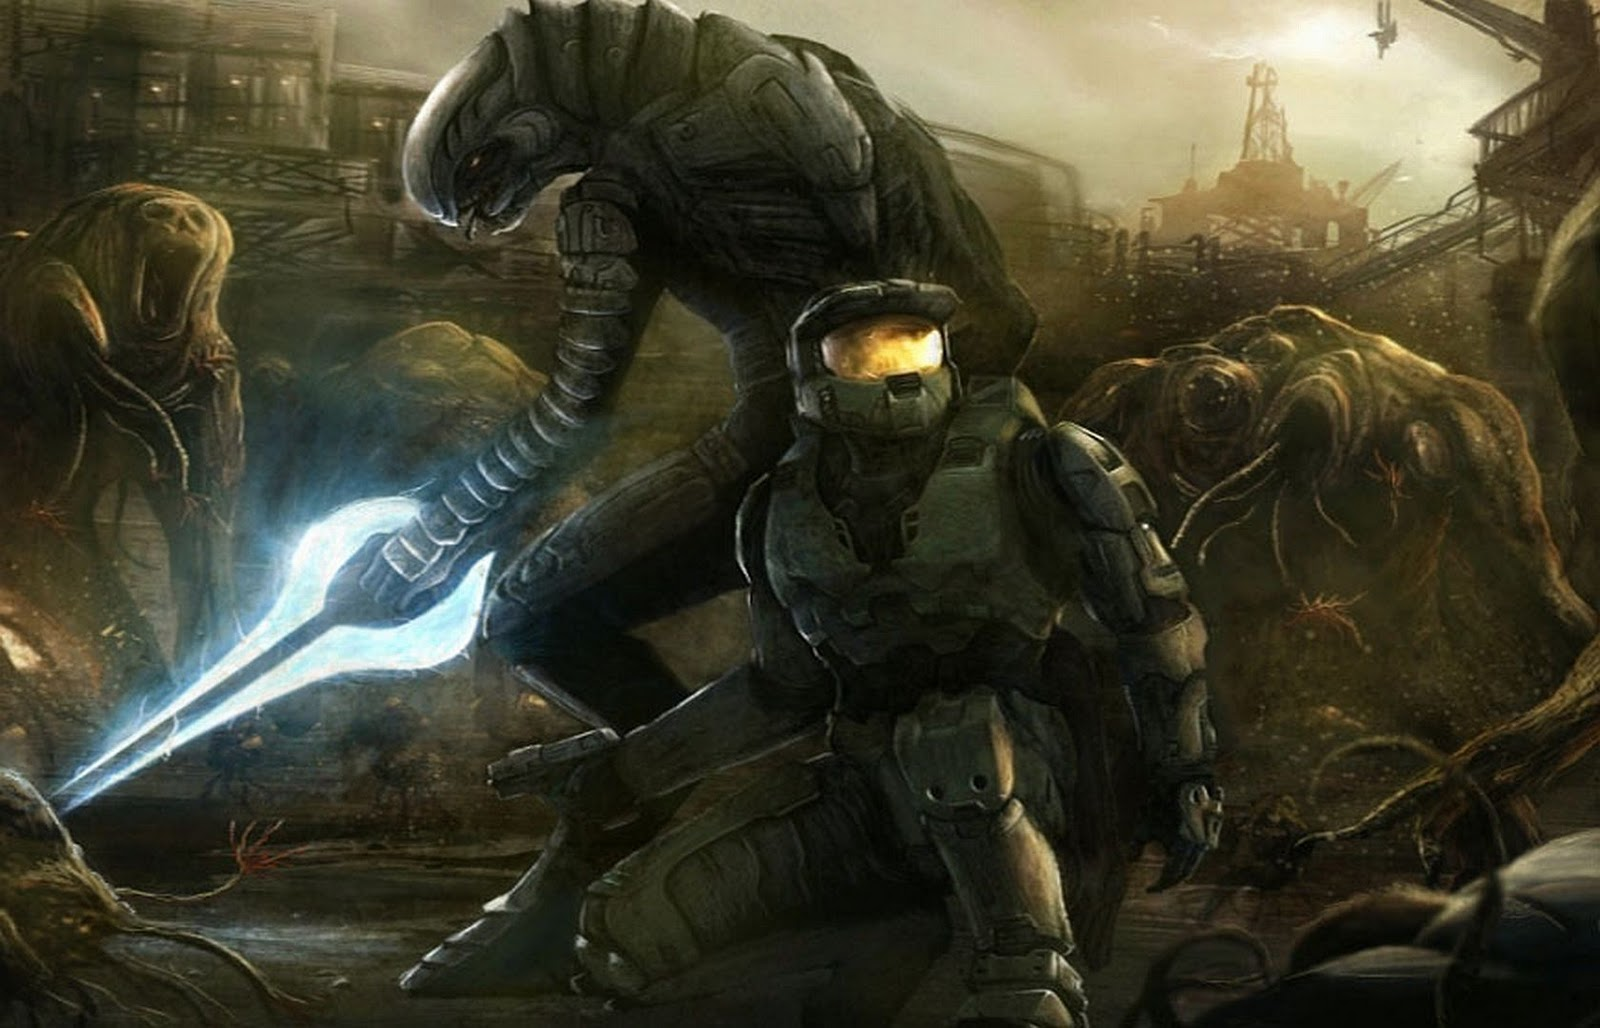 HALO WALLPAPERS 1600x1028